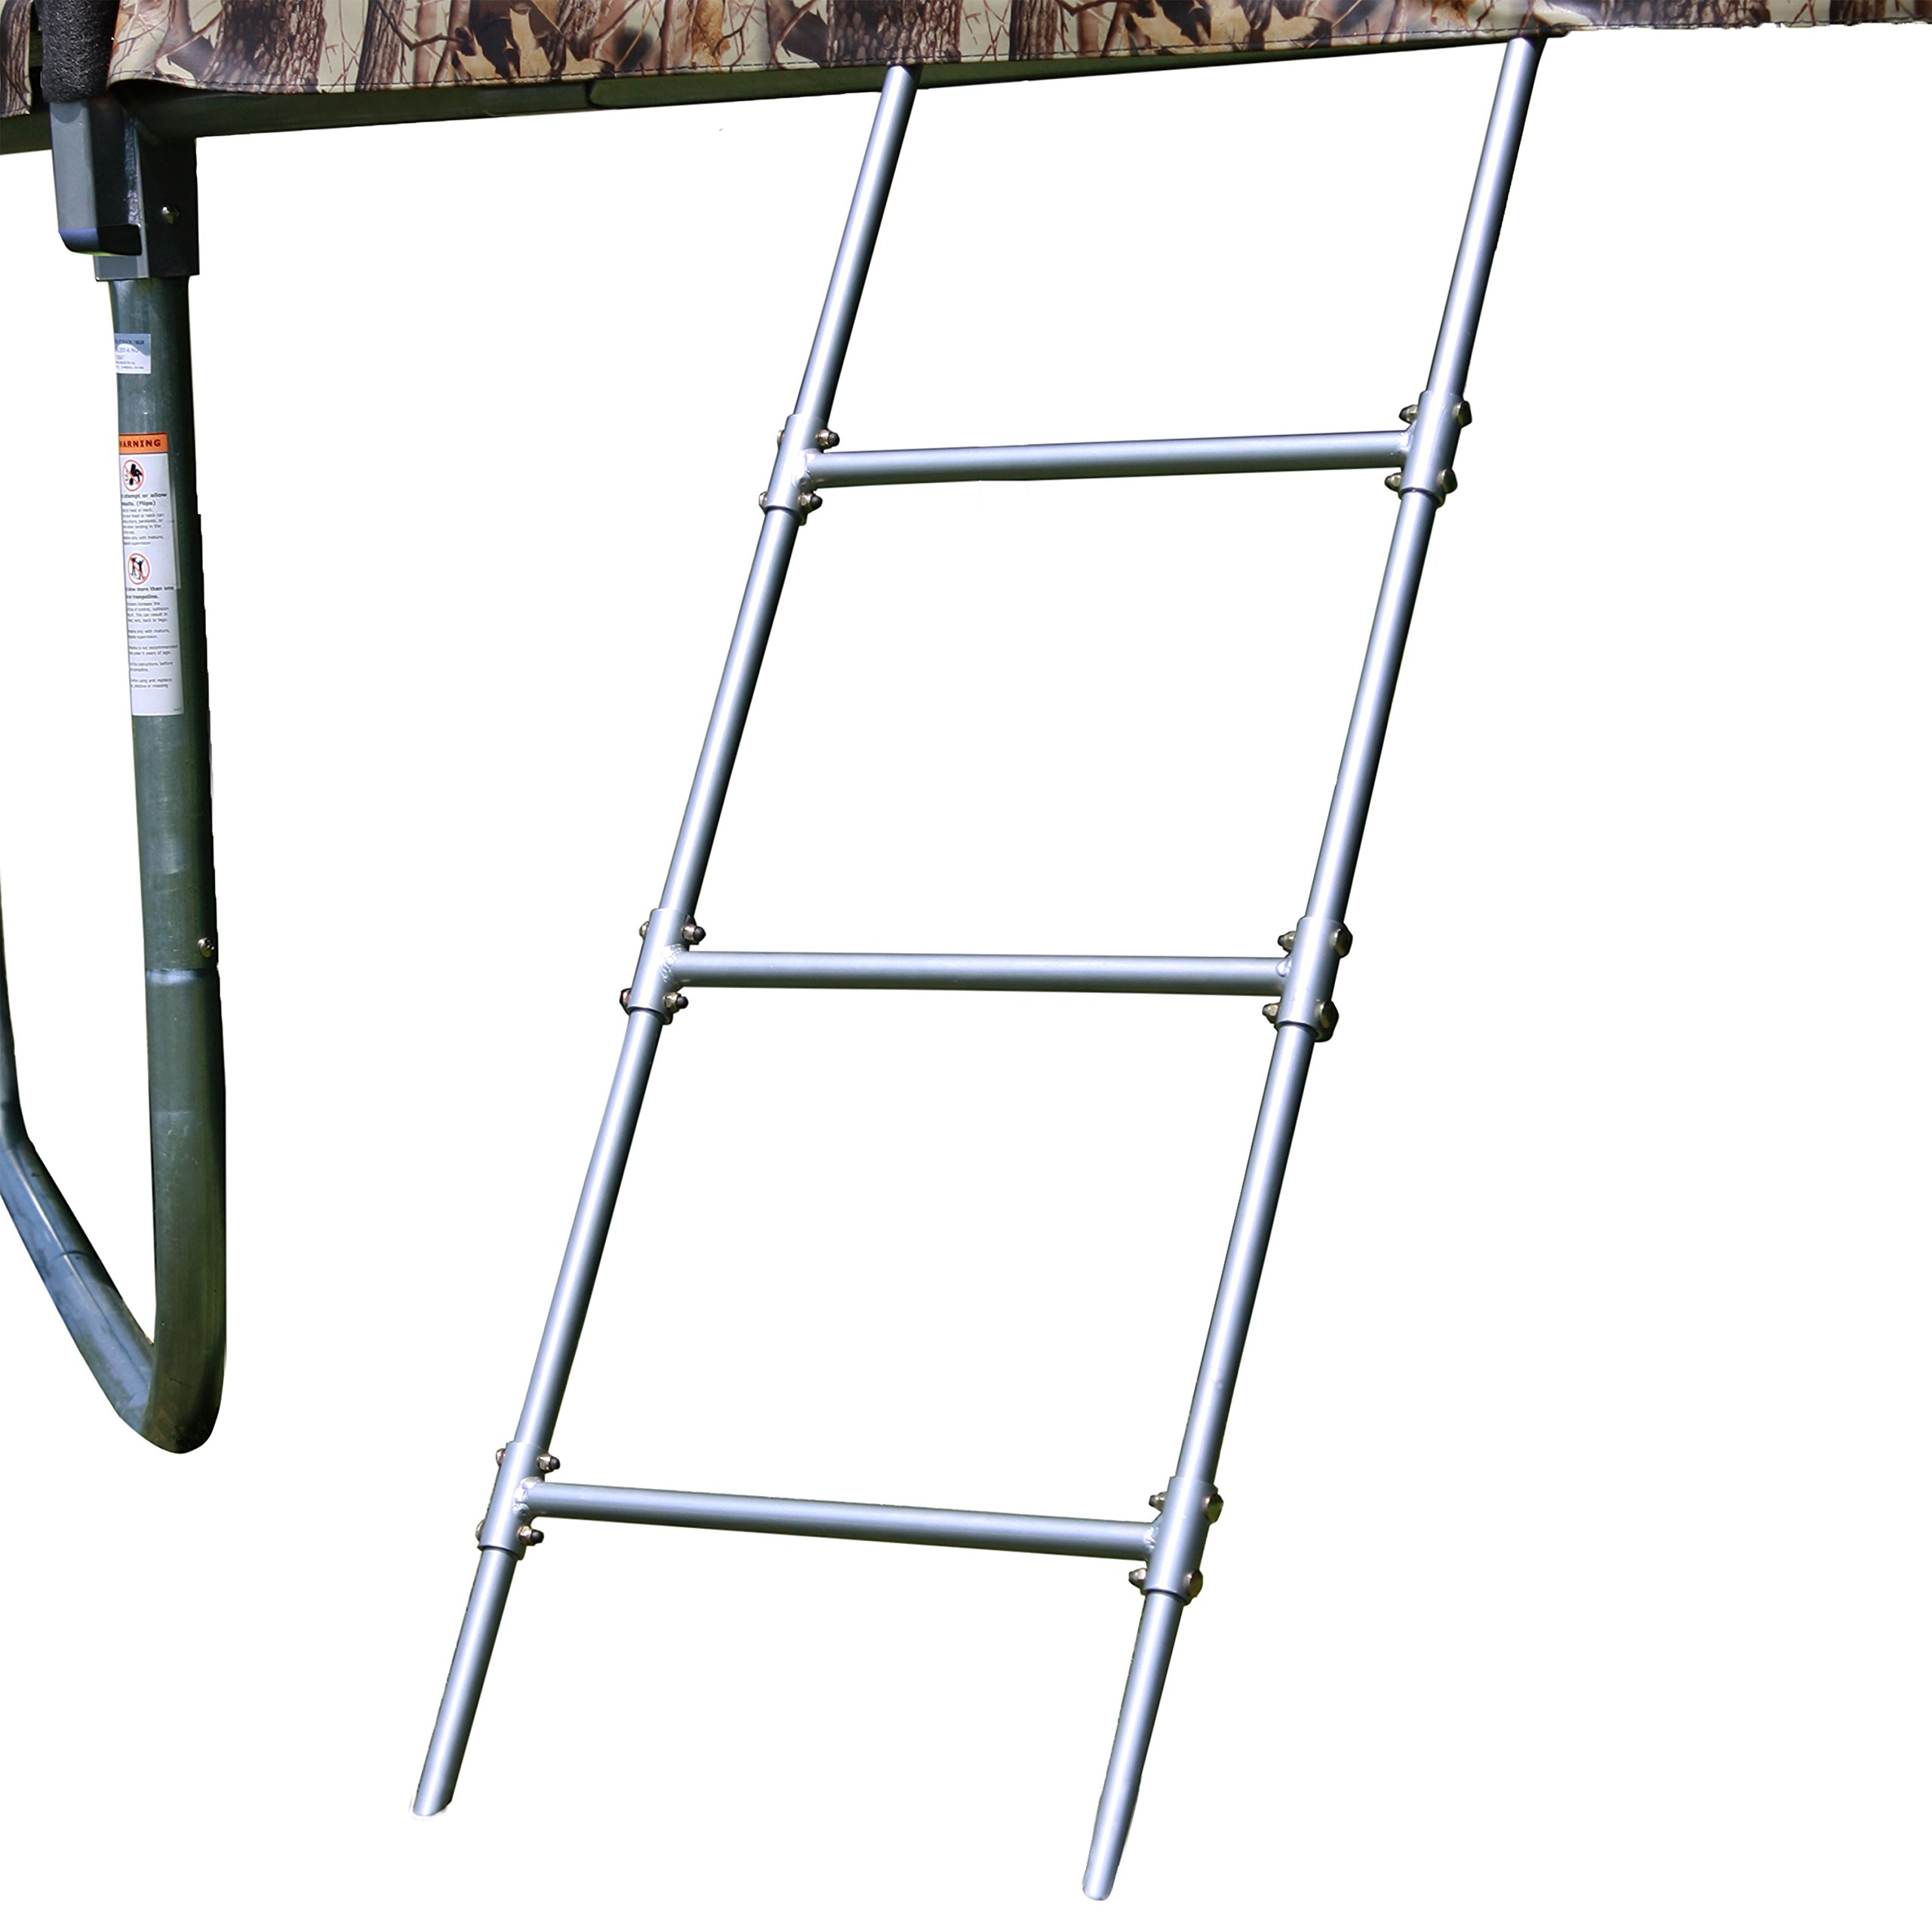 Skywalker Trampolines 3-Rung Ladder by Skywalker Trampolines